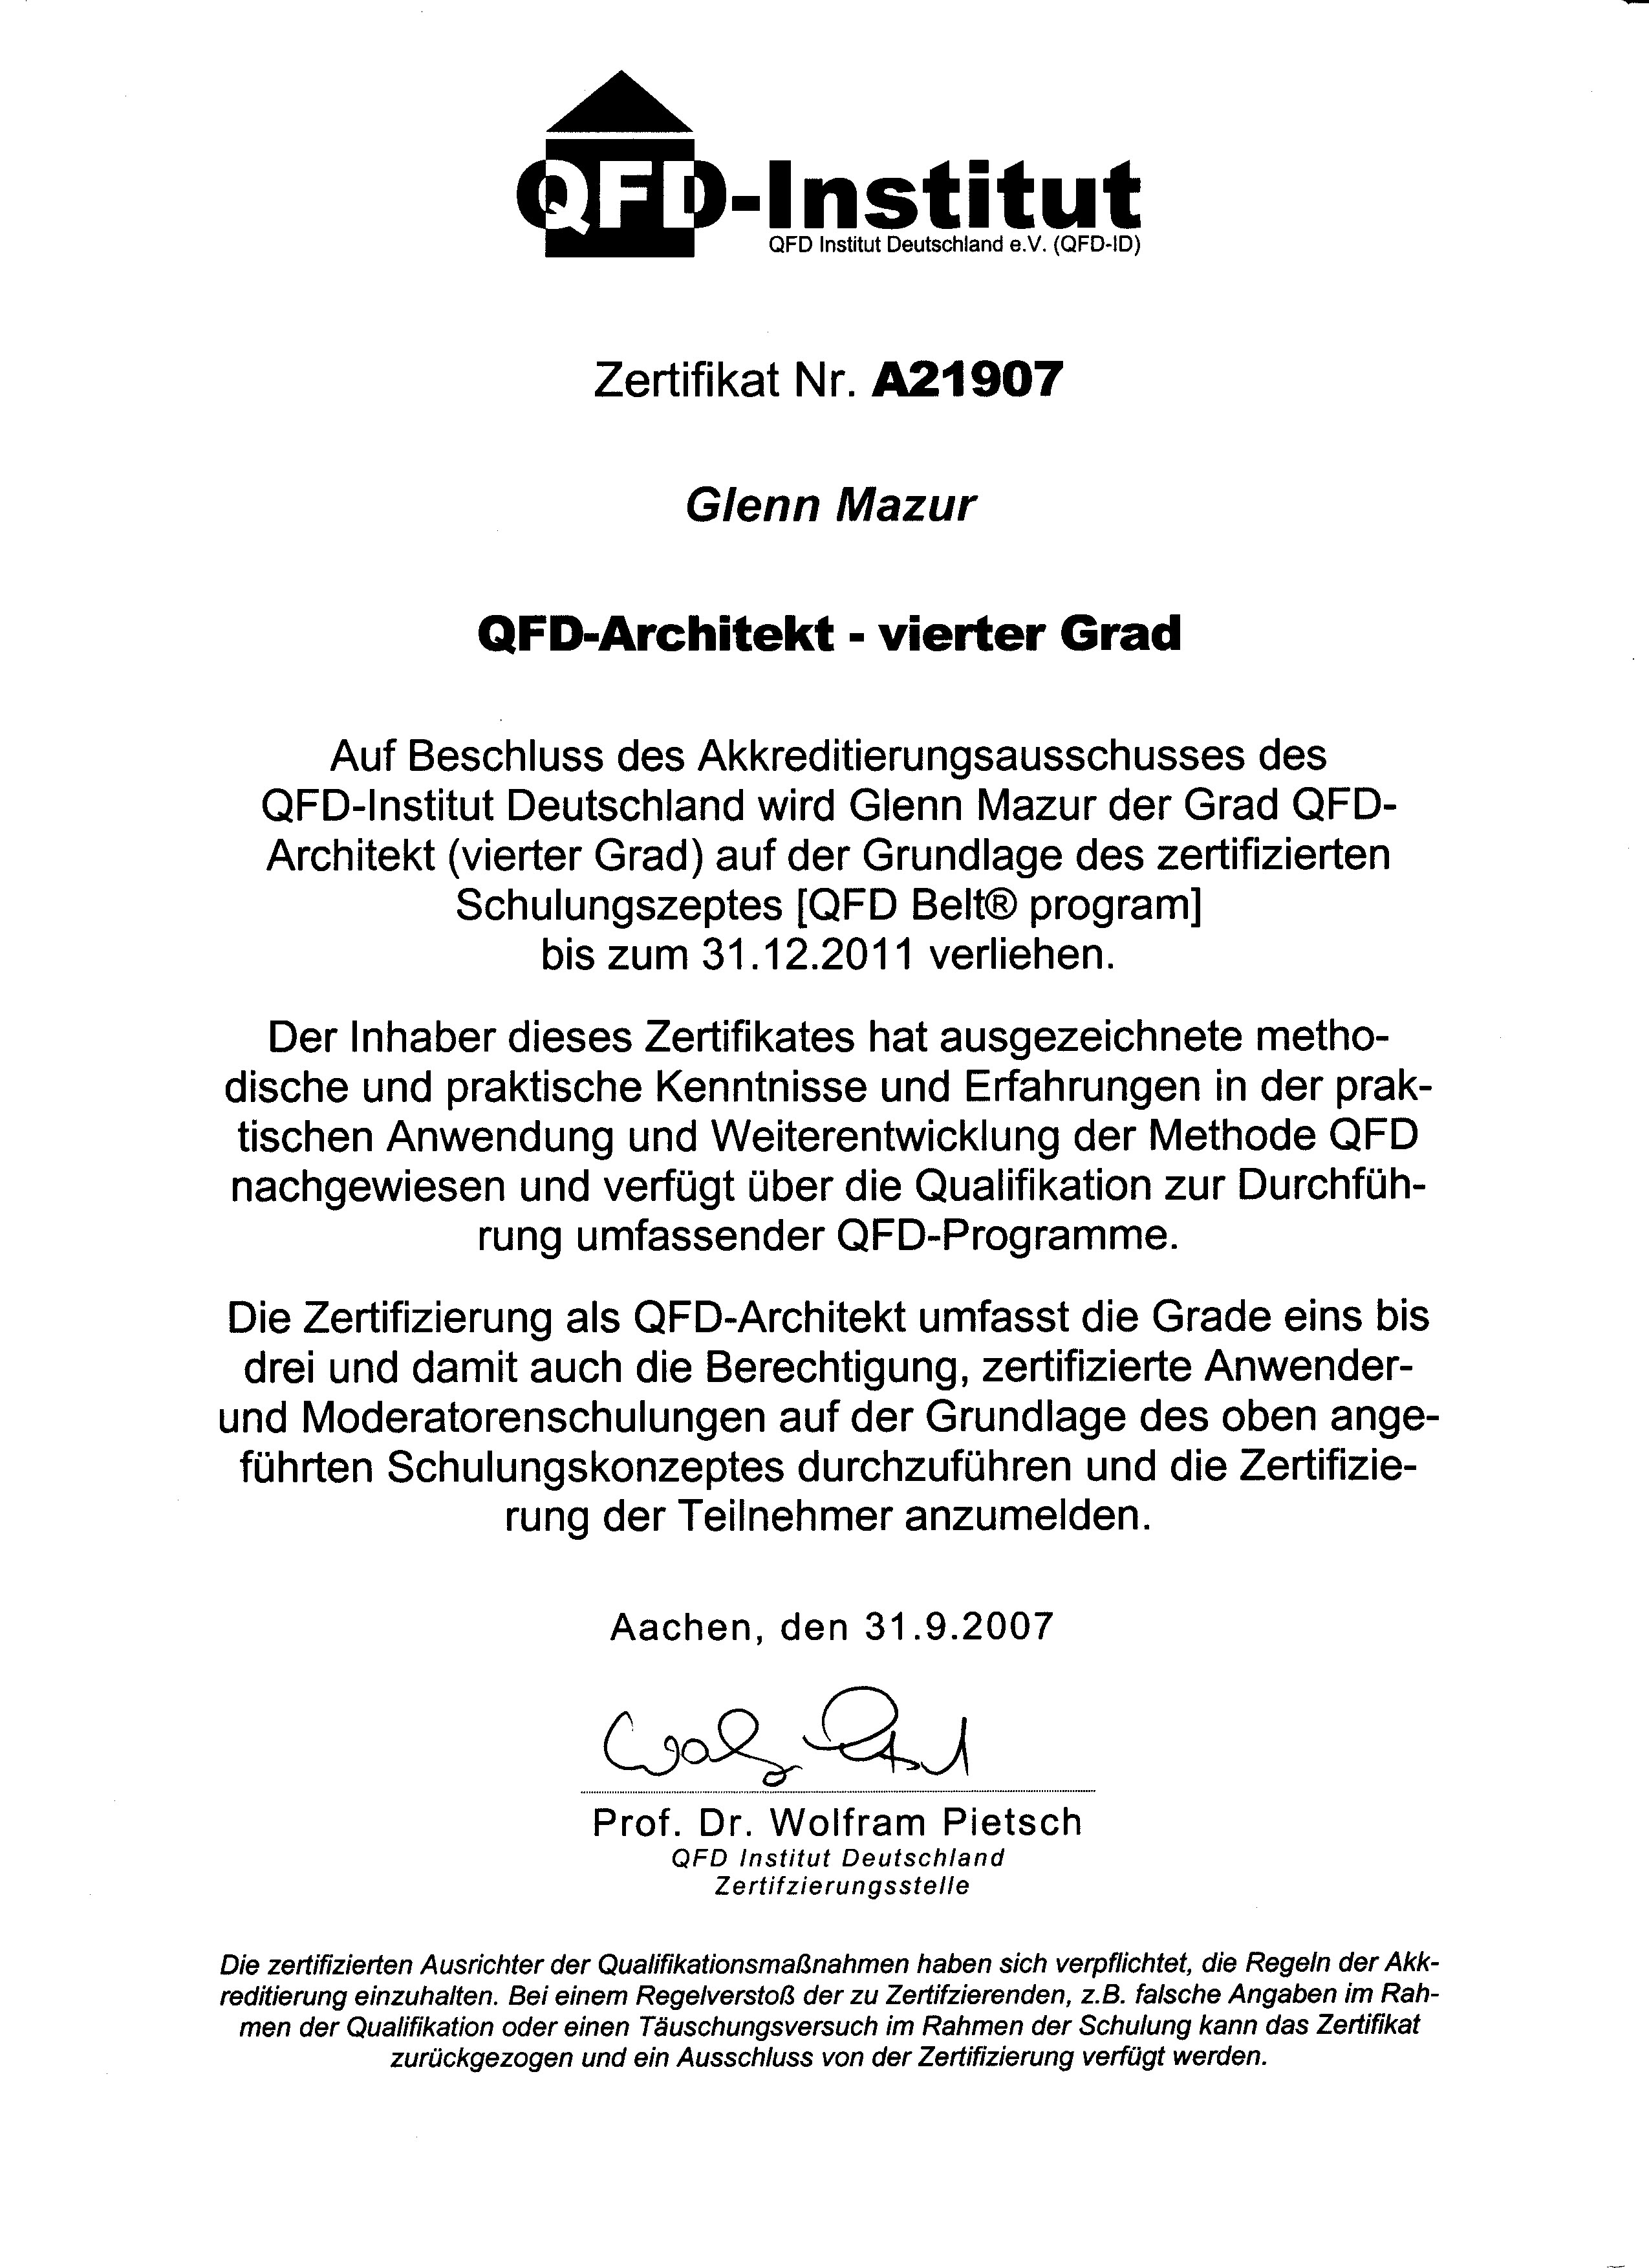 Nice Certificate Of Completion Schulung Gift - FORTSETZUNG ...